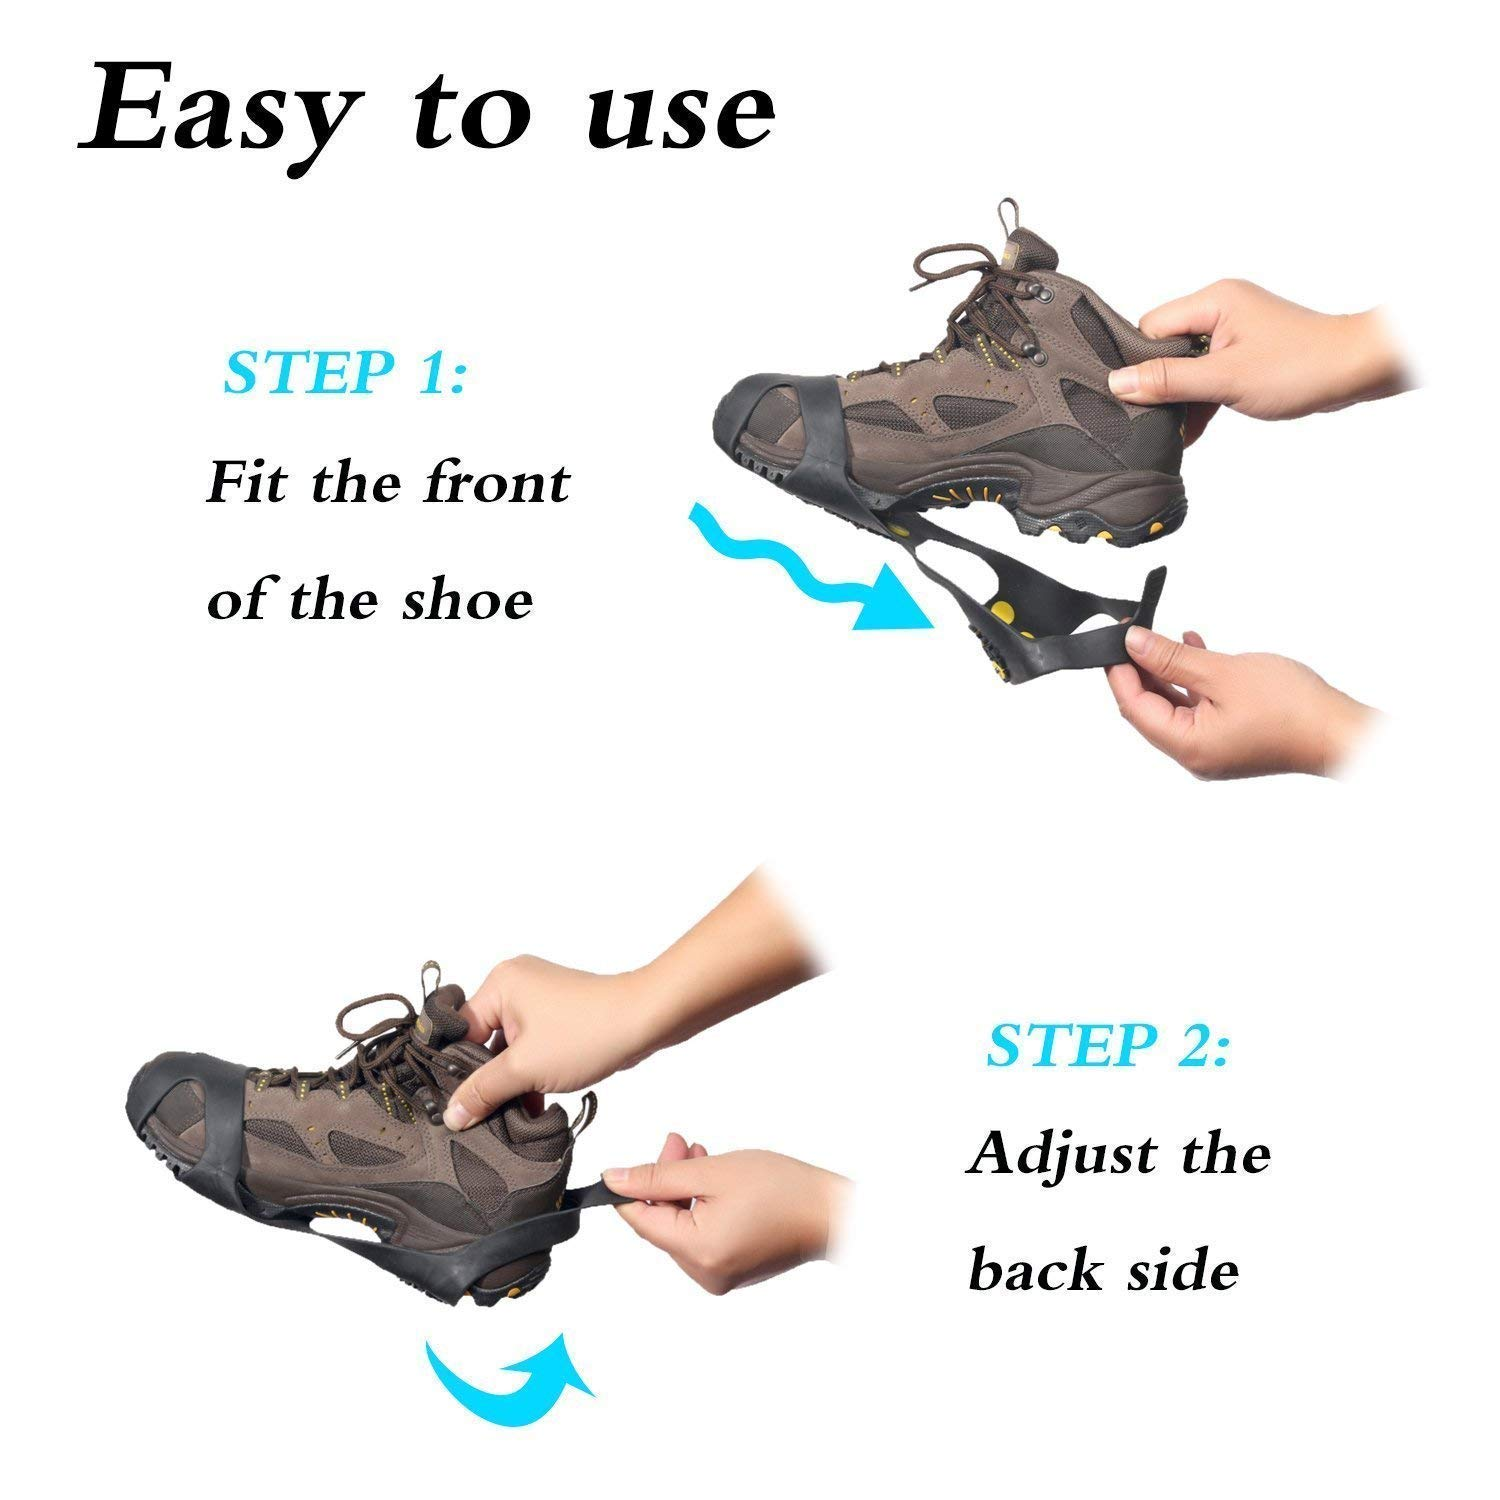 Climbing Snow Ice Cleats Grips Anti-Slip Studded Ice Traction Shoe Covers Spike Crampons Cleats Size S//M//L//XL AGPTEK Non-Slip Over Shoe